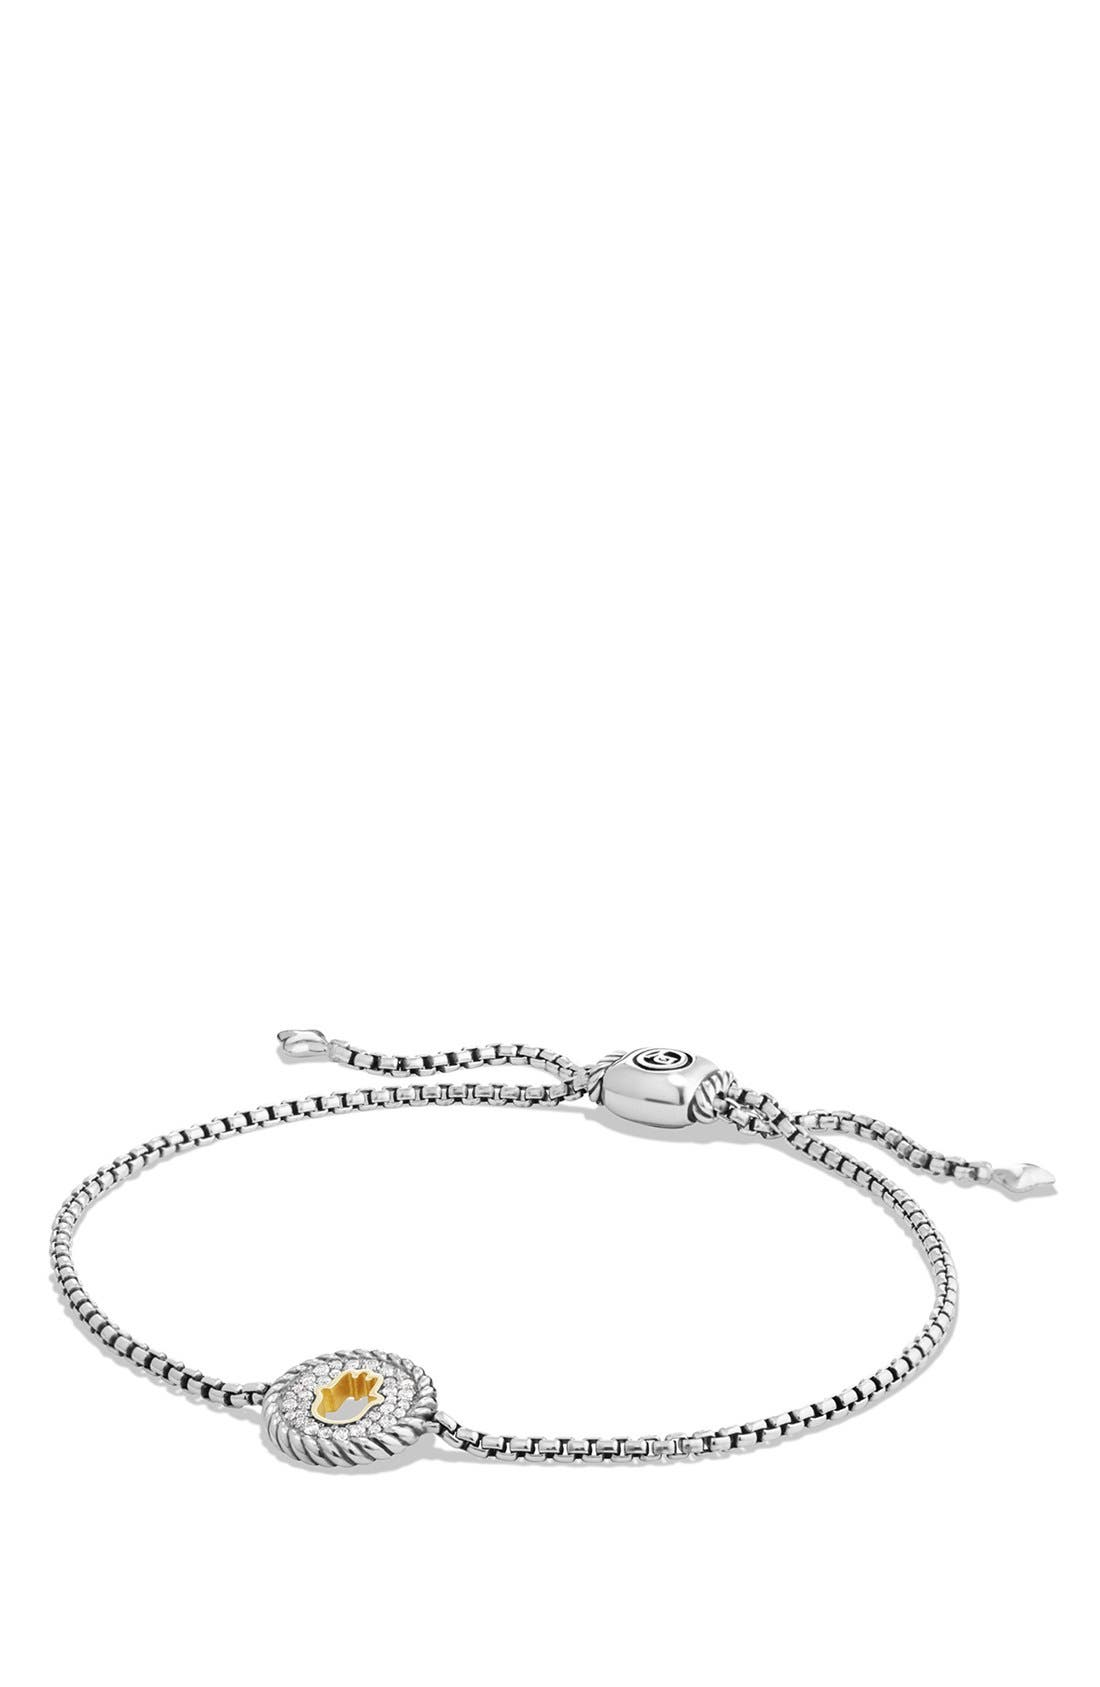 Main Image - David Yurman 'Cable Collection' Petite Pavé Hamsa Bracelet